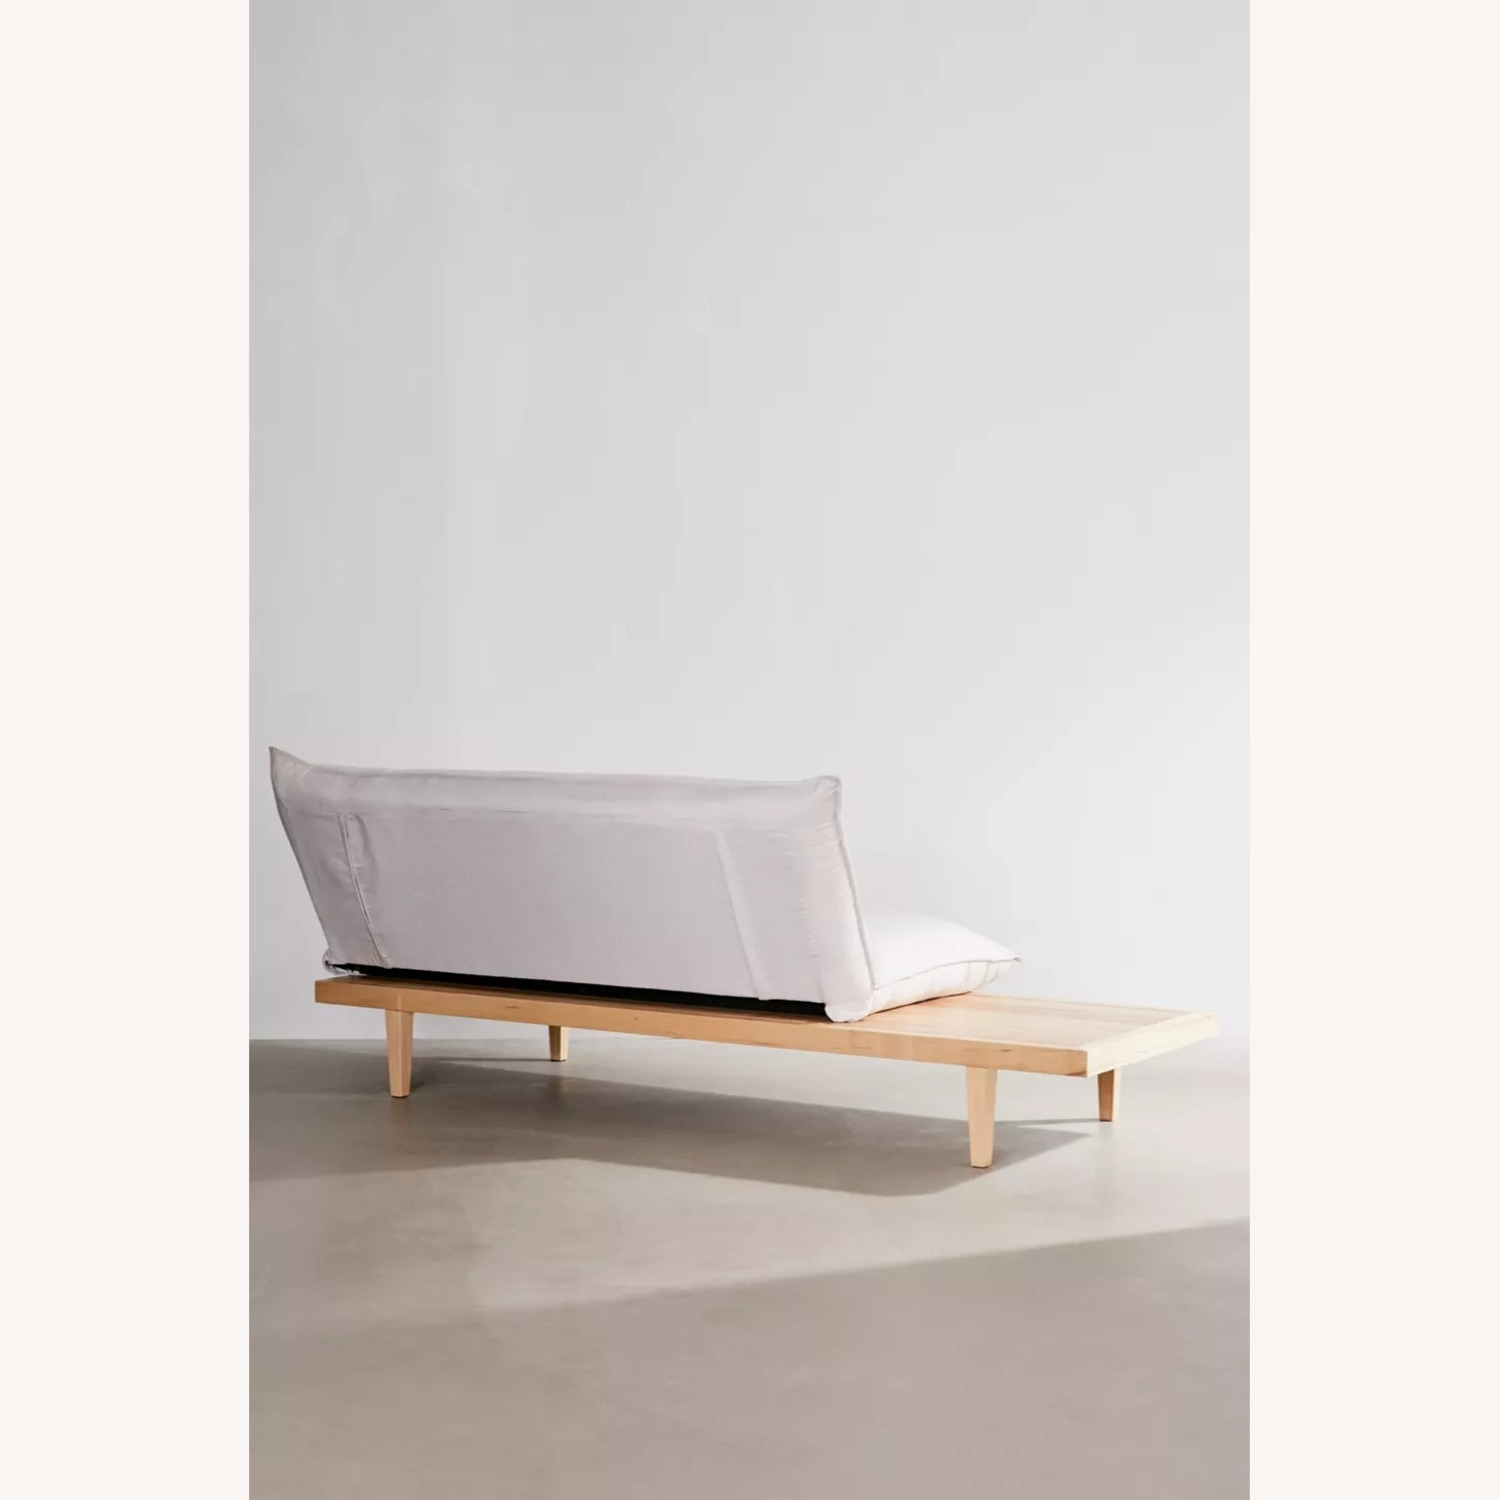 Urban Outfitters Reid Side Table Convertible Sofa - image-2